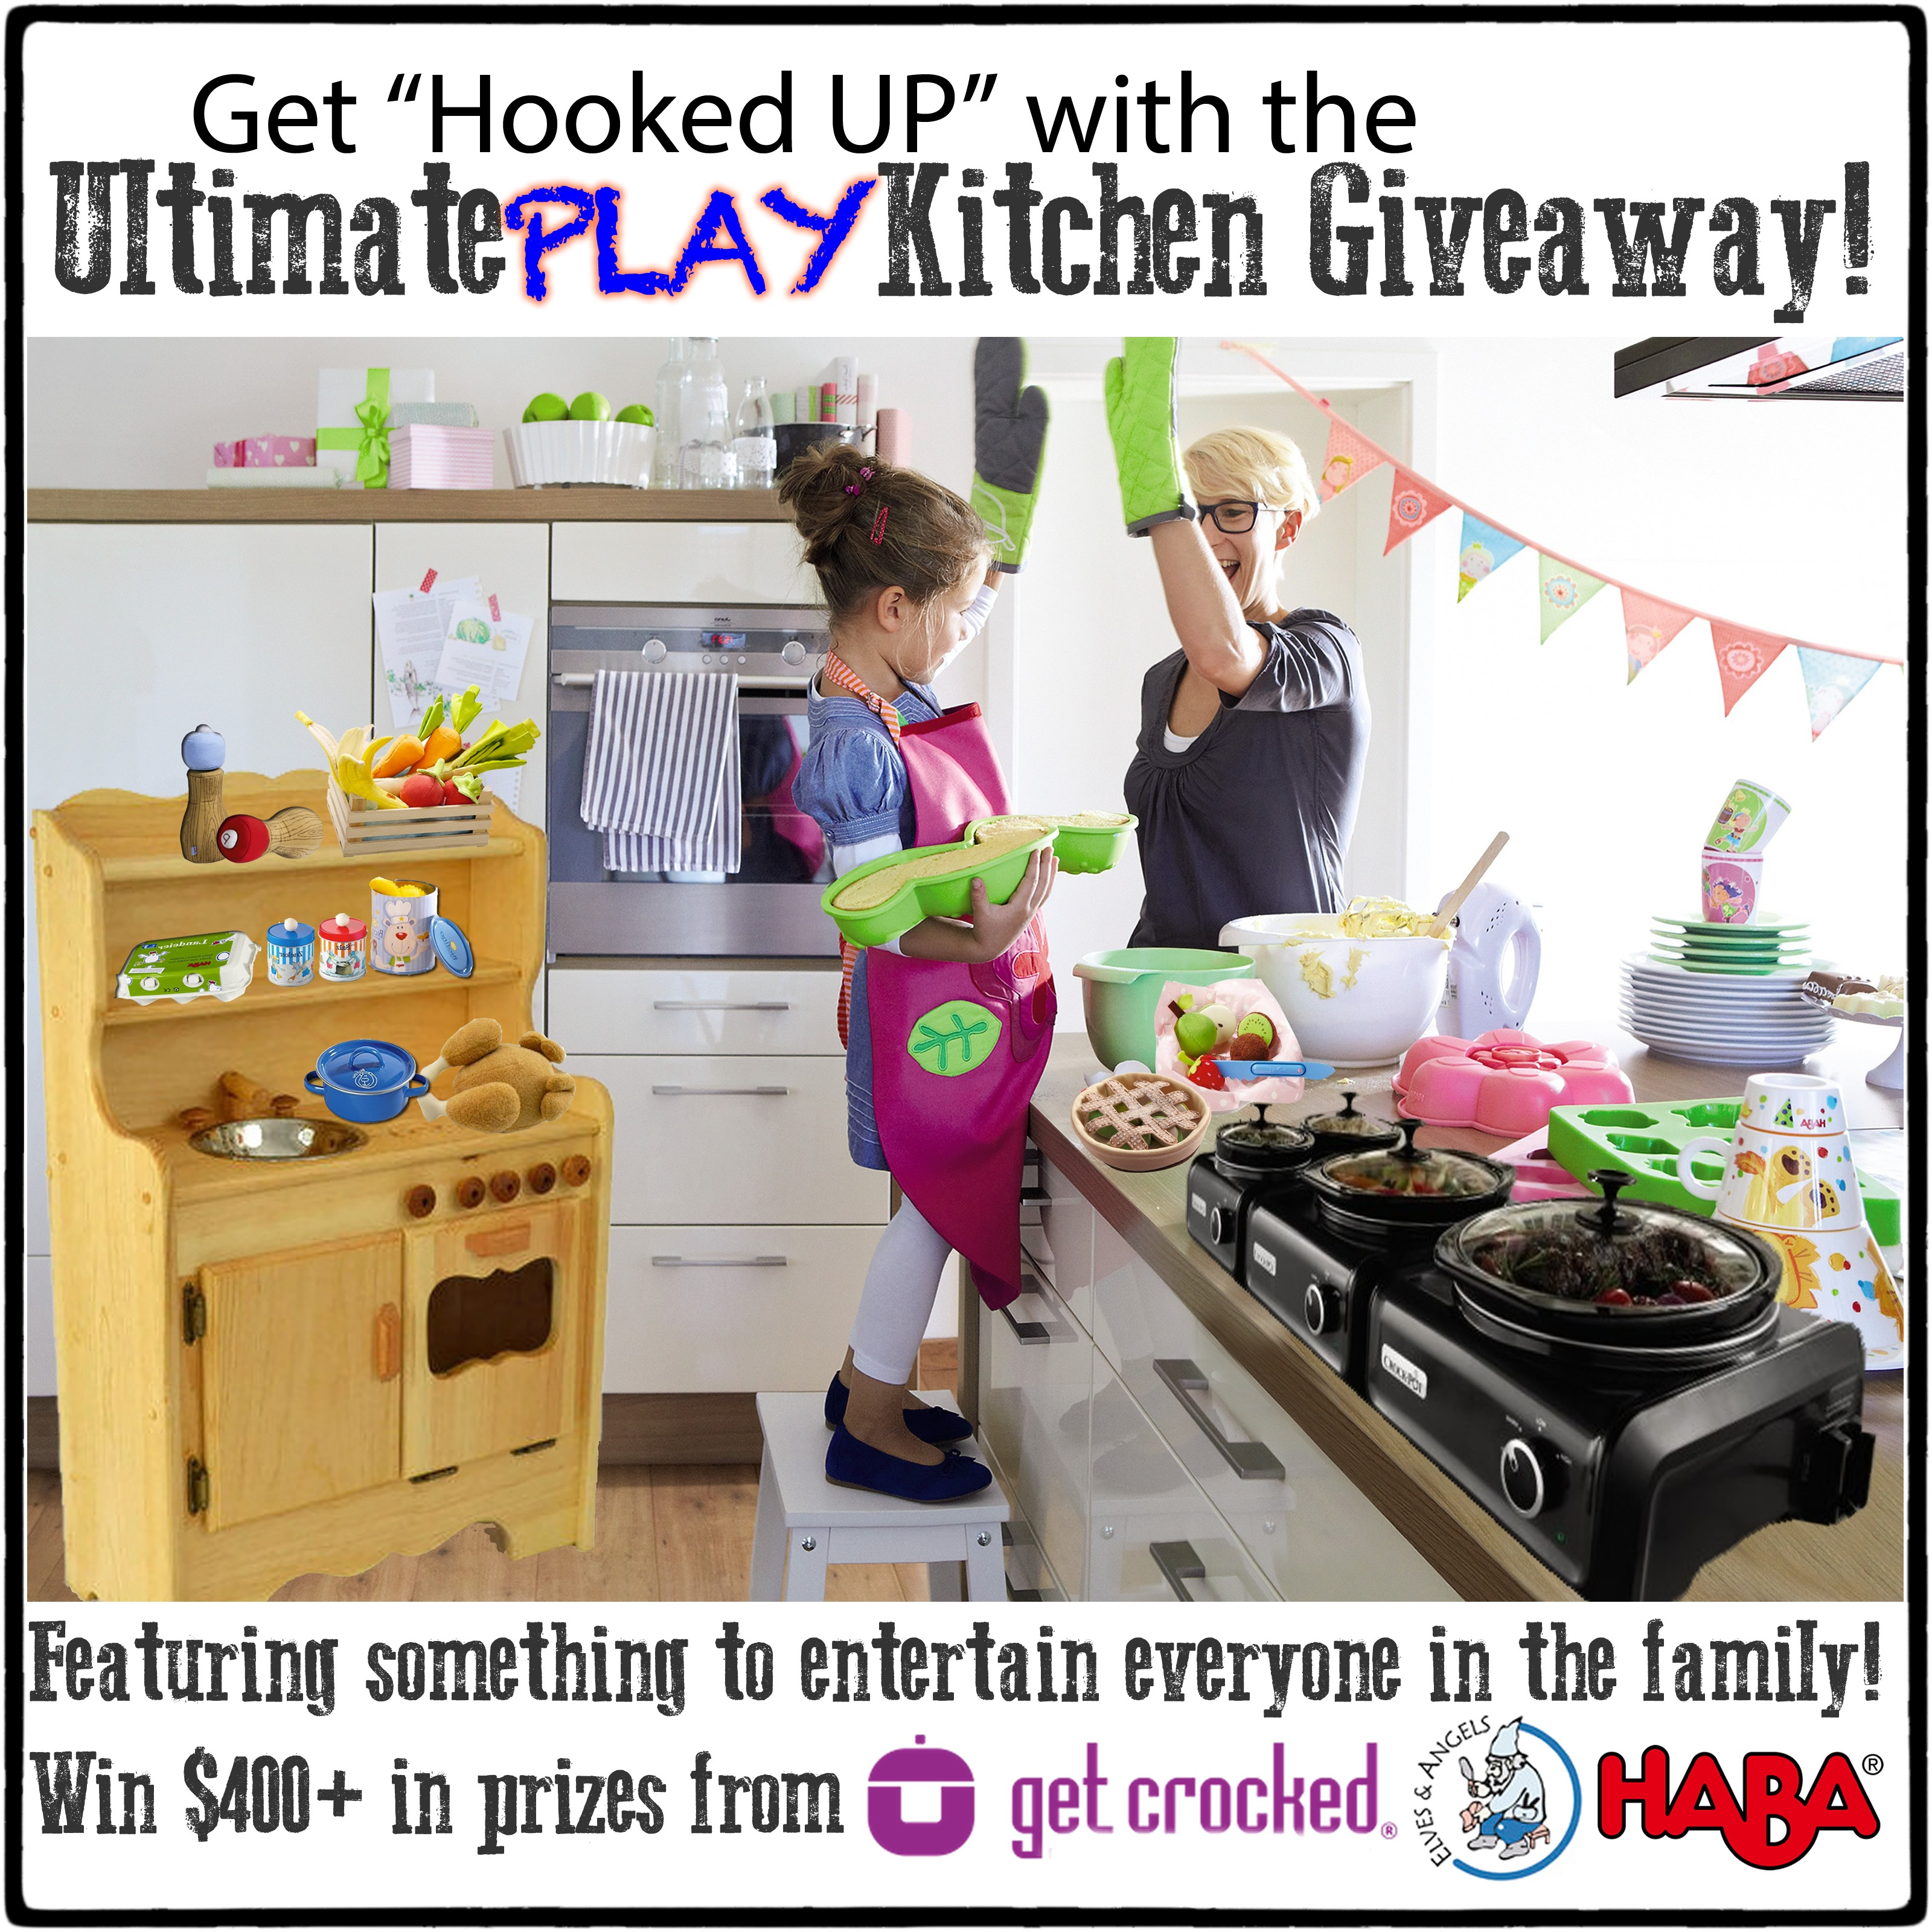 The Ultimate Play Kitchen Giveaway